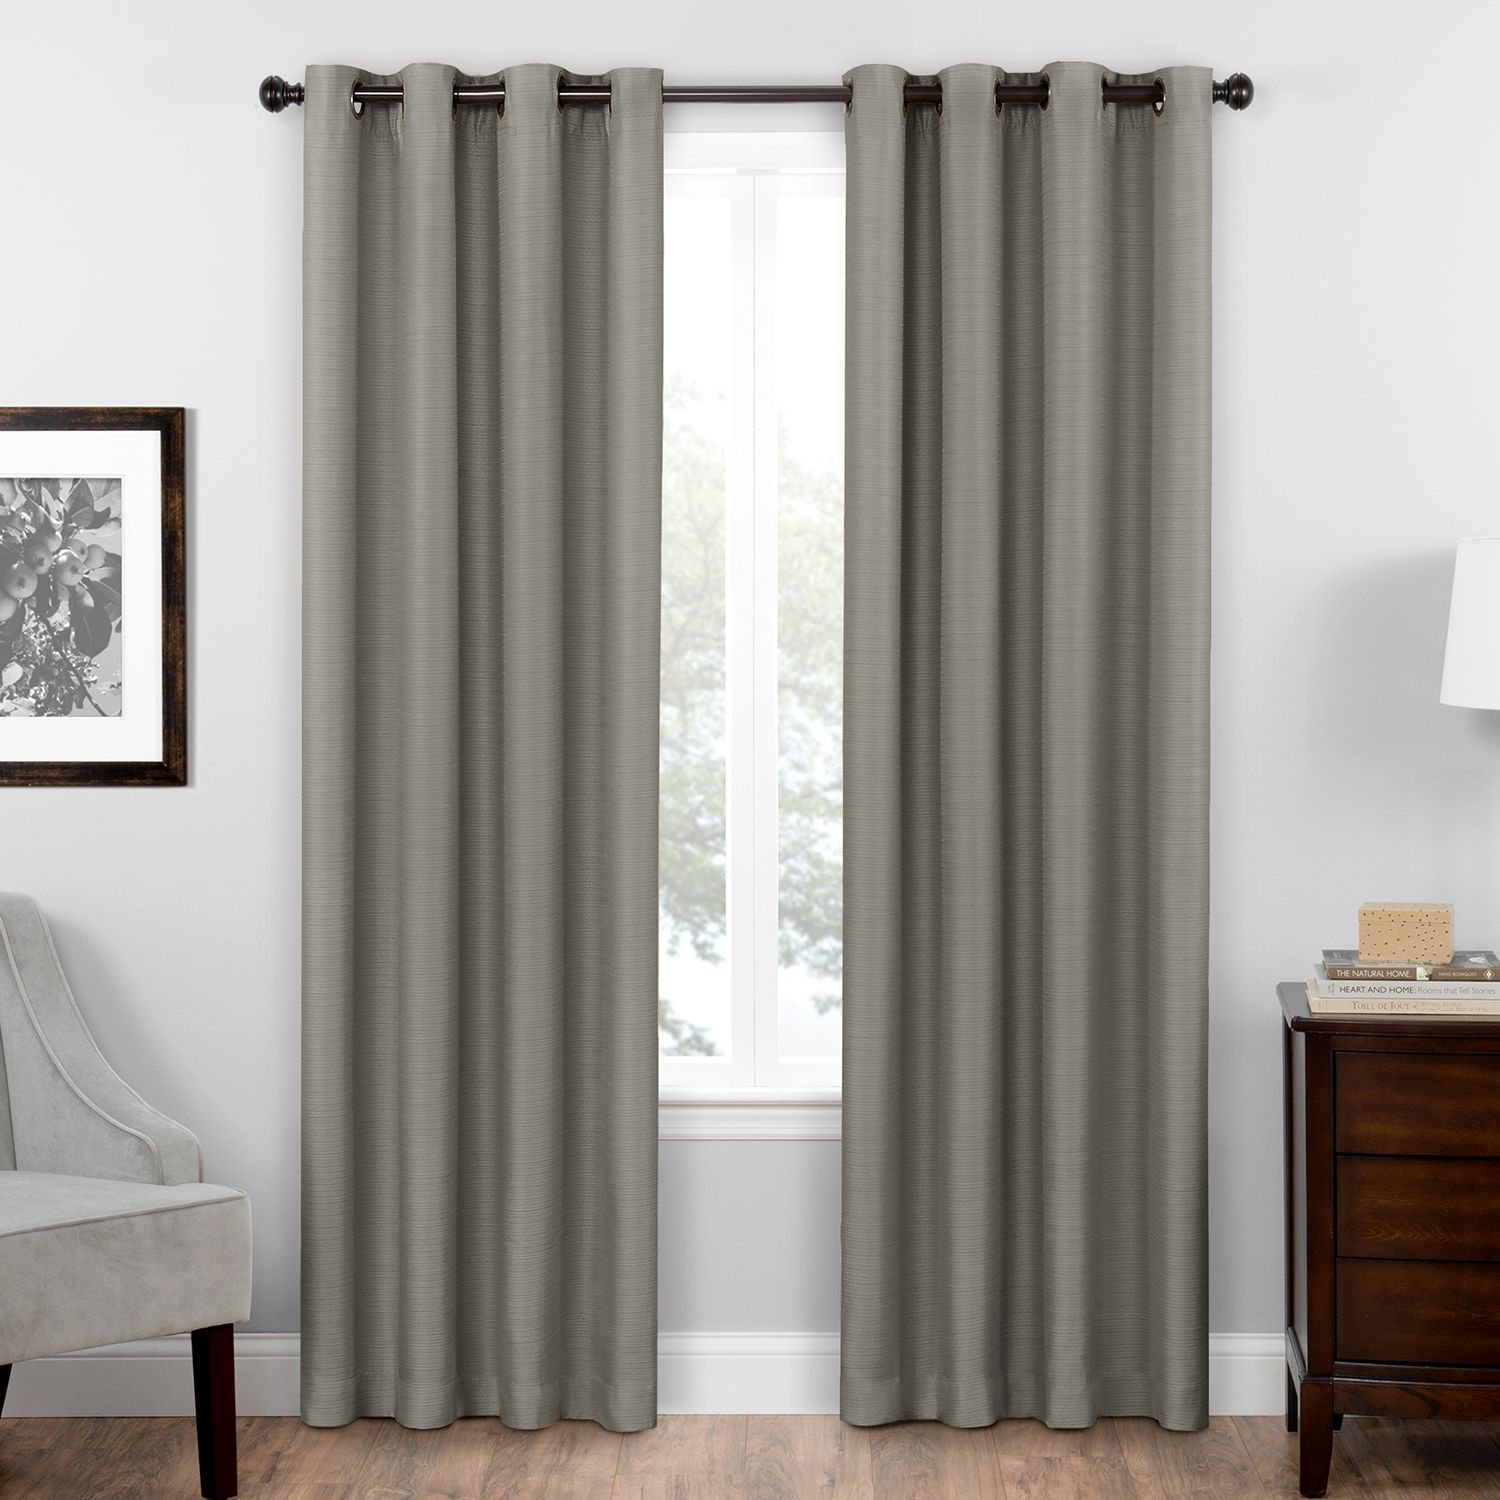 Merveilleux Eclipse Thermaweave Blackout 1 Panel Bryson Window Curtain